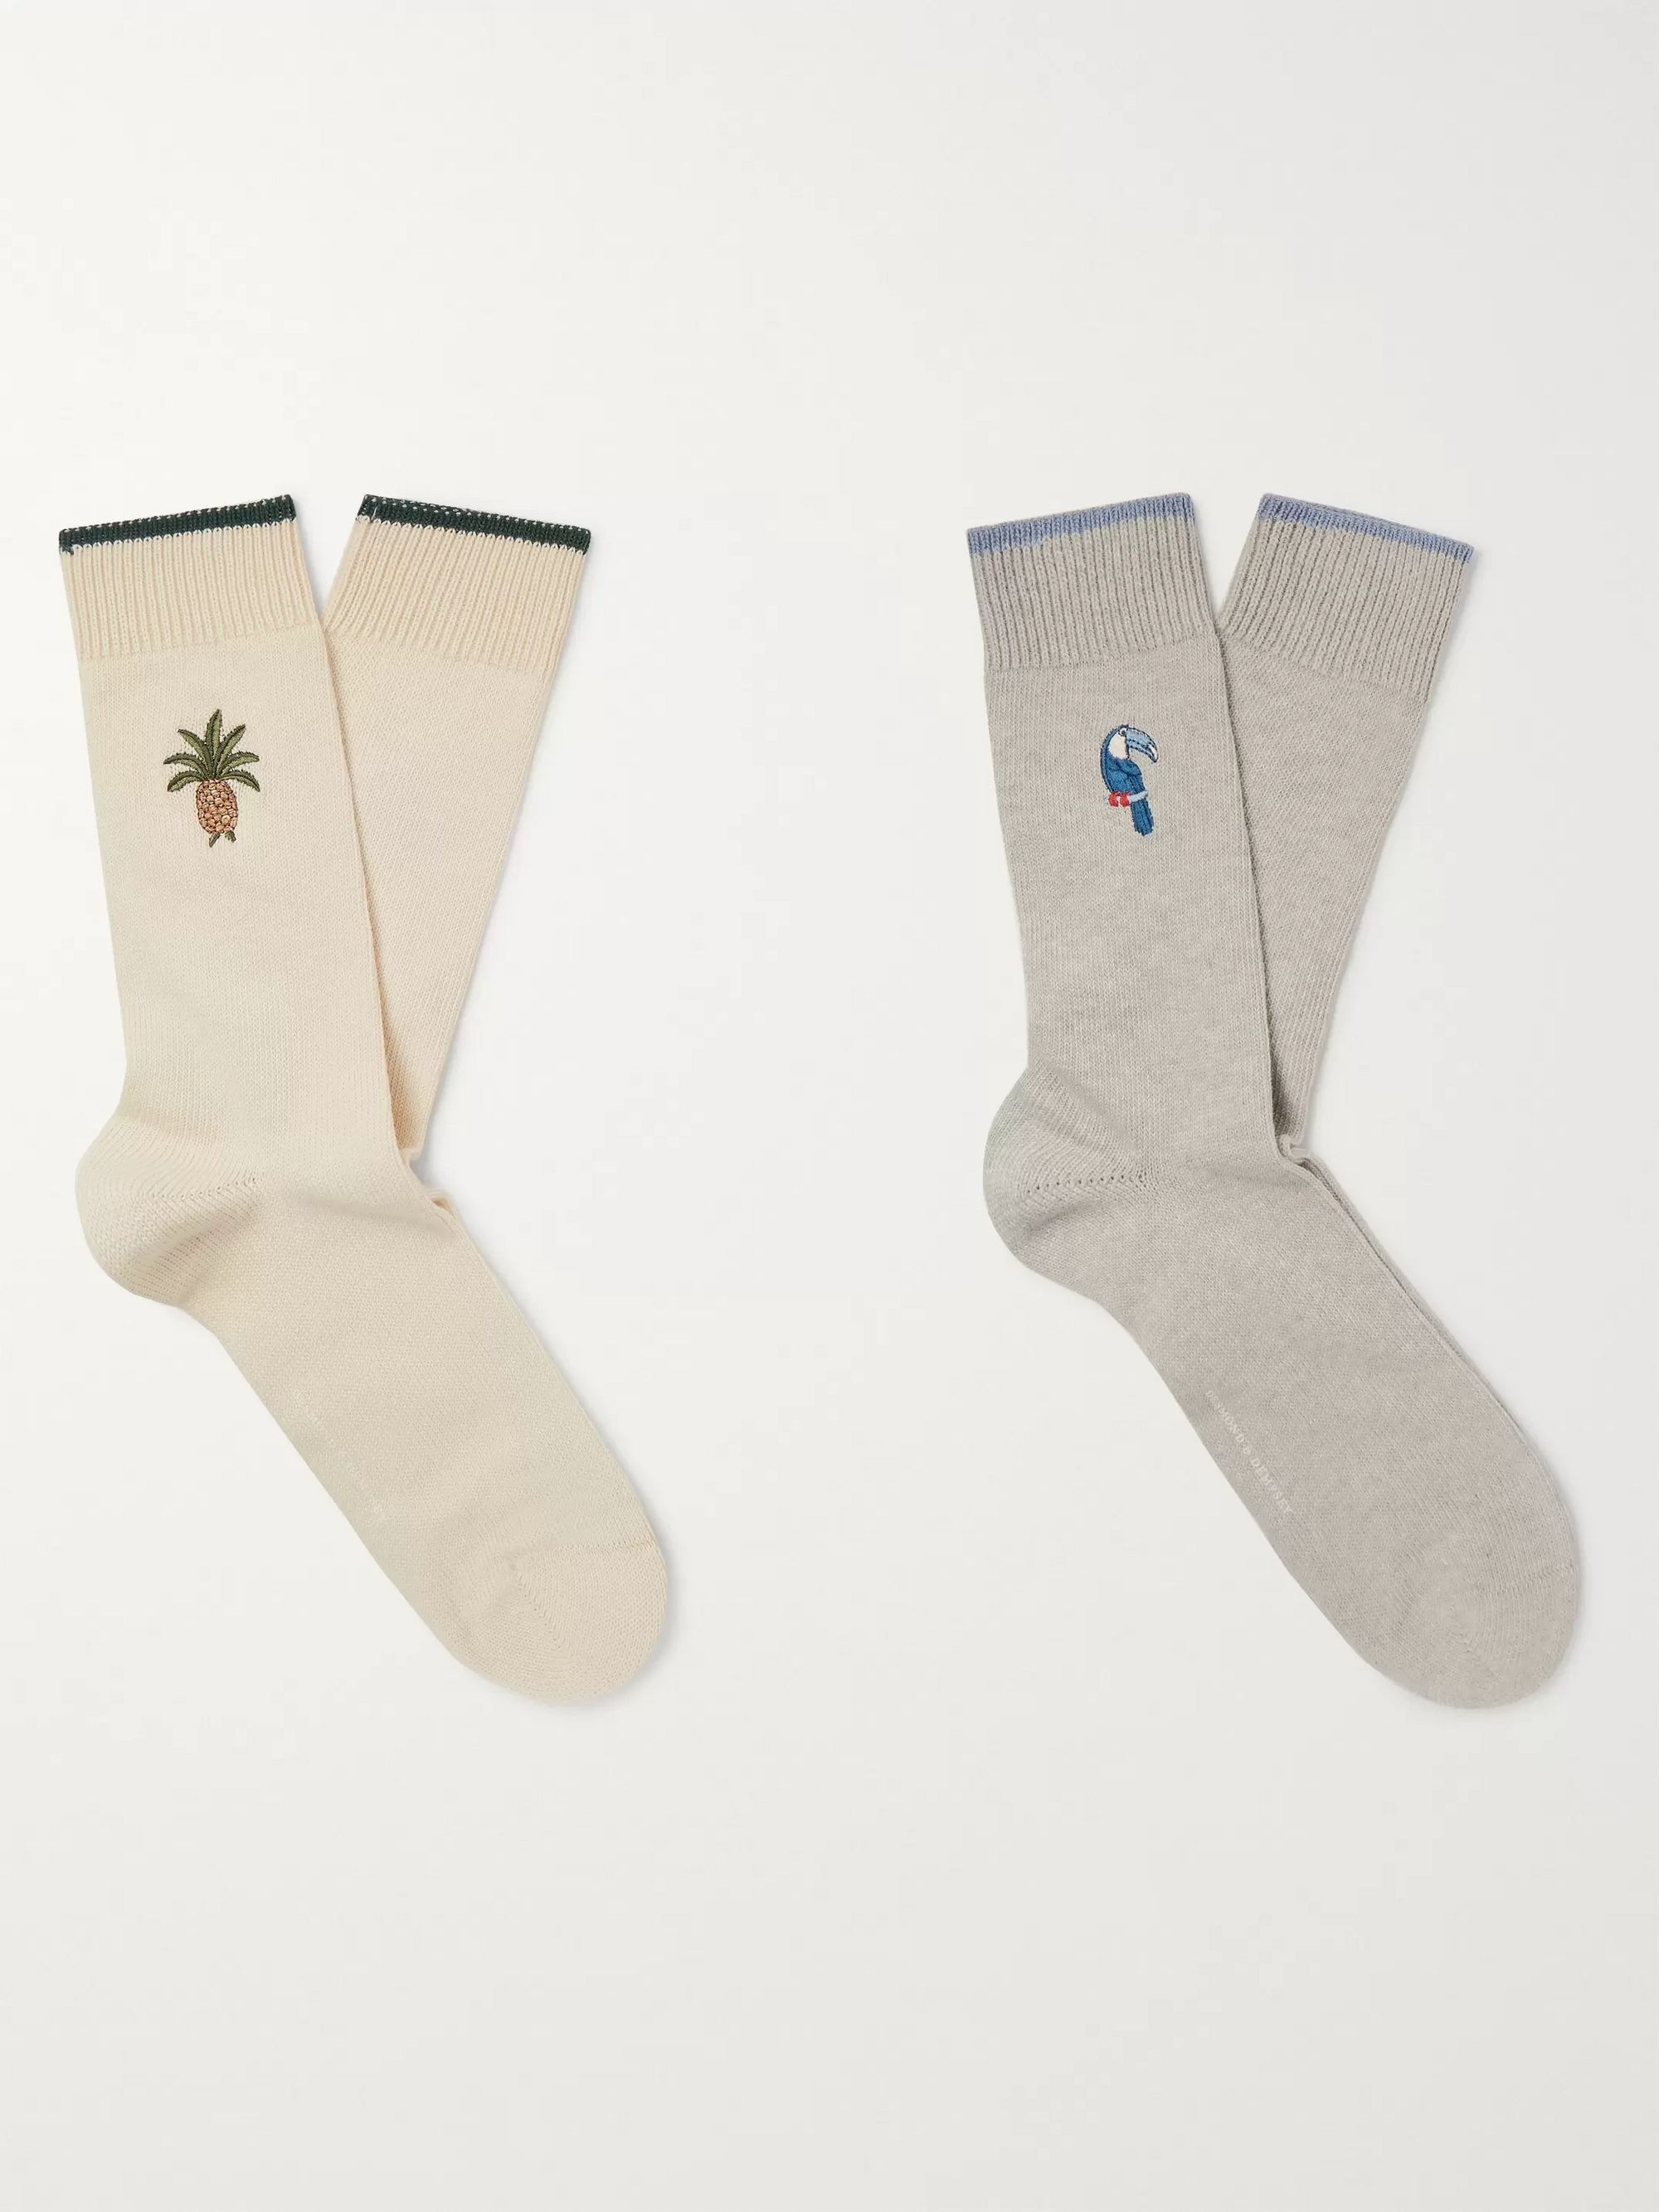 Two Pack Embroidered Stretch Cotton Blend Socks by Desmond & Dempsey